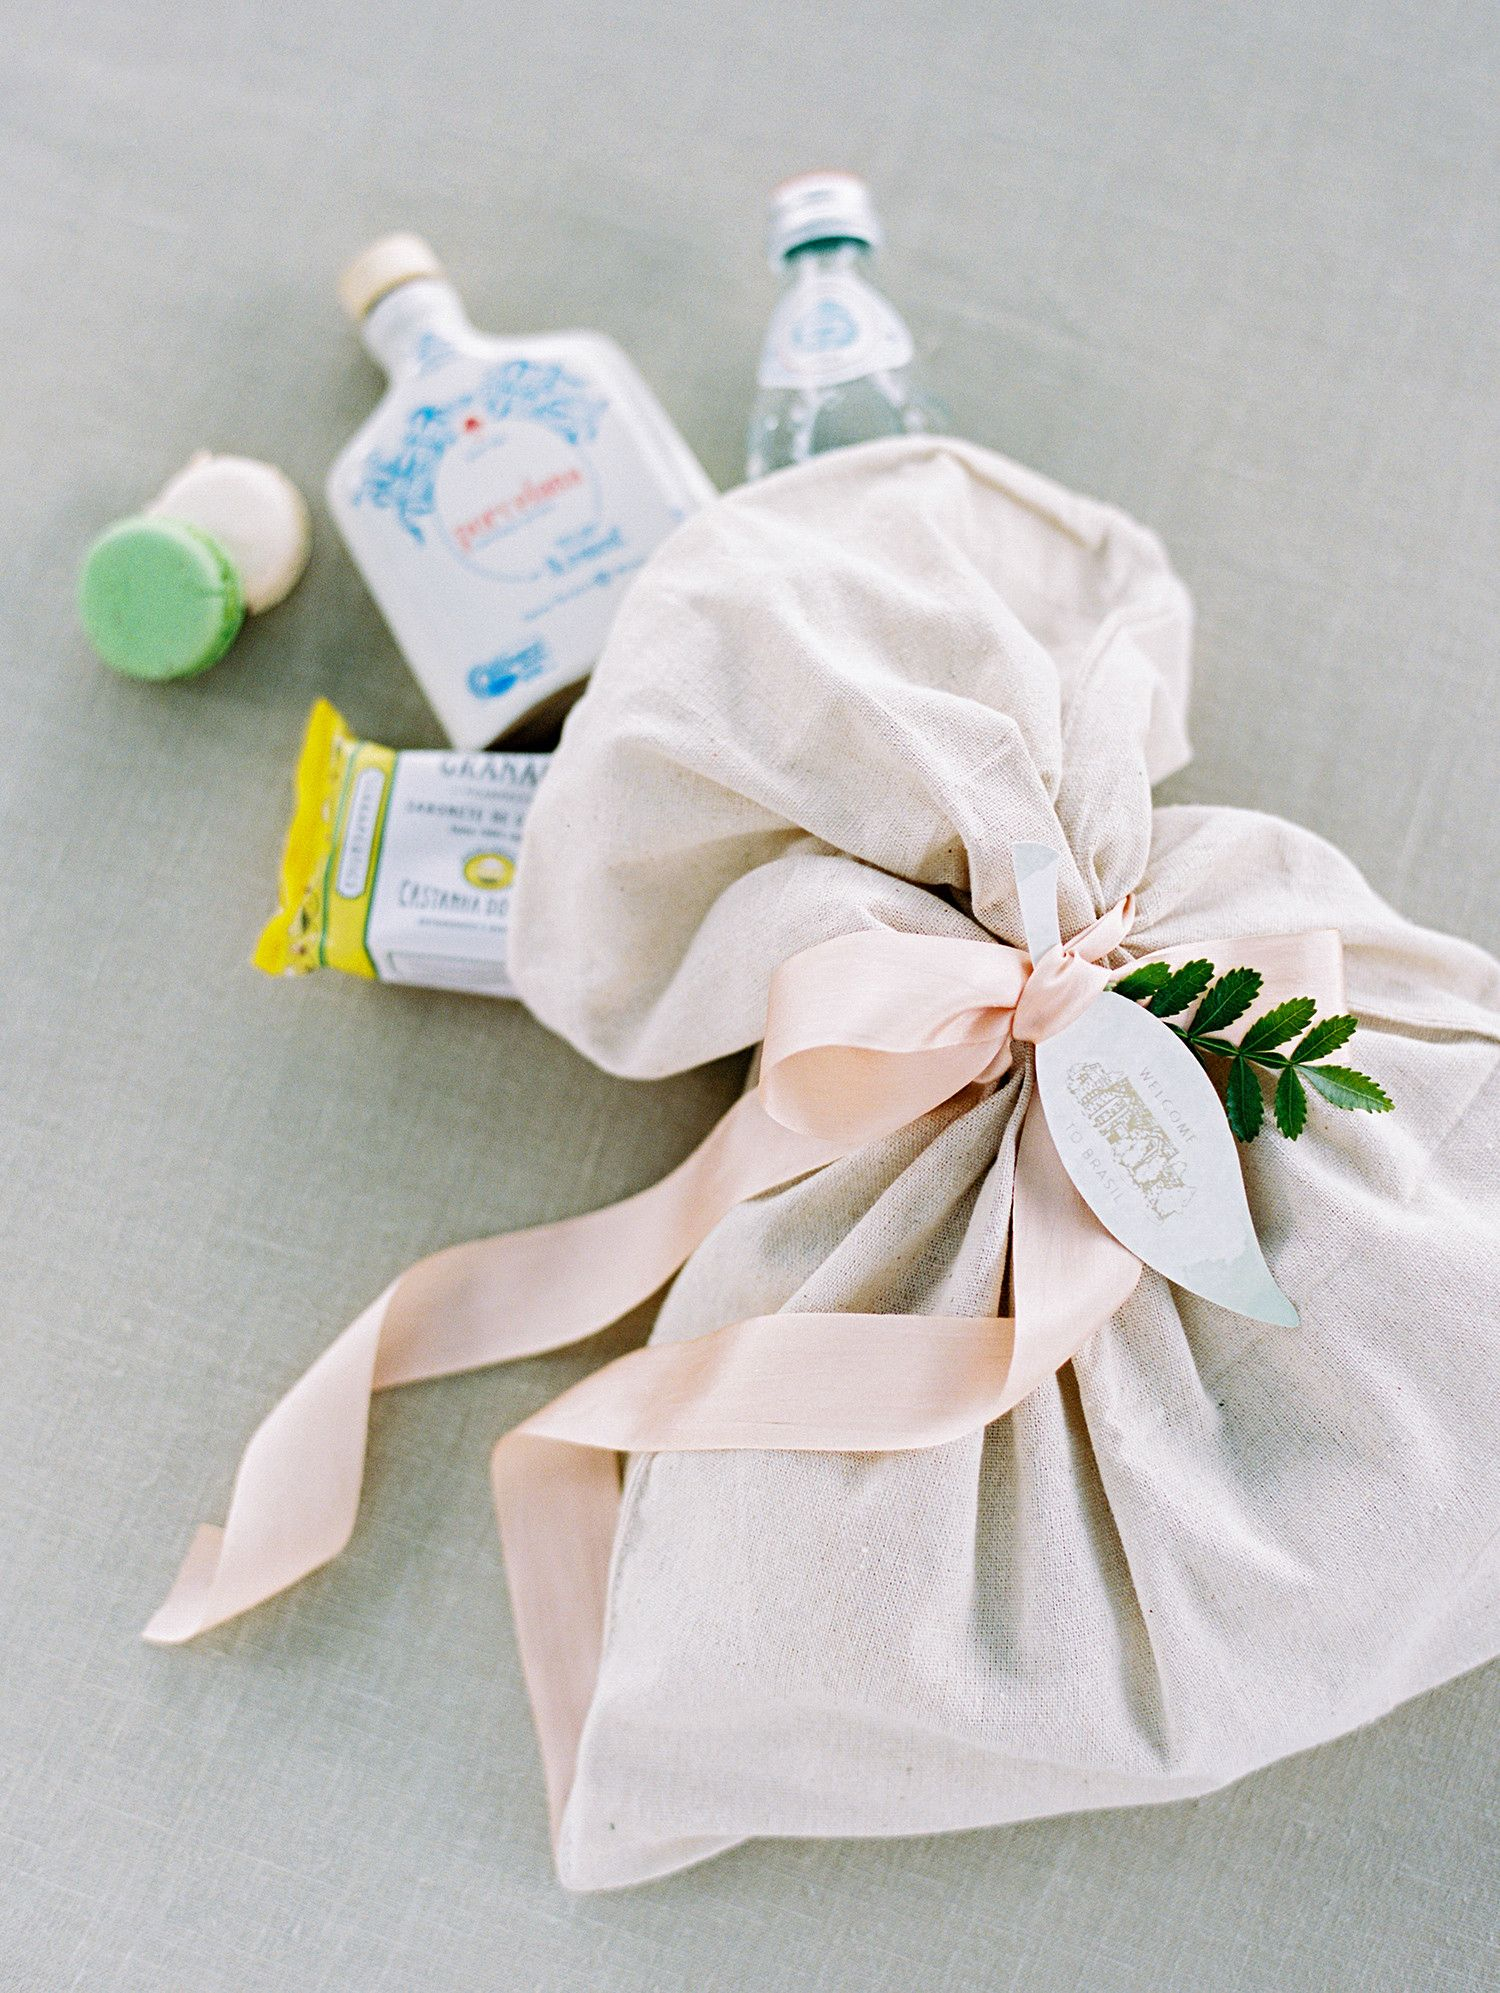 The couple gifted welcome bags to each of their guests. The goodies ...